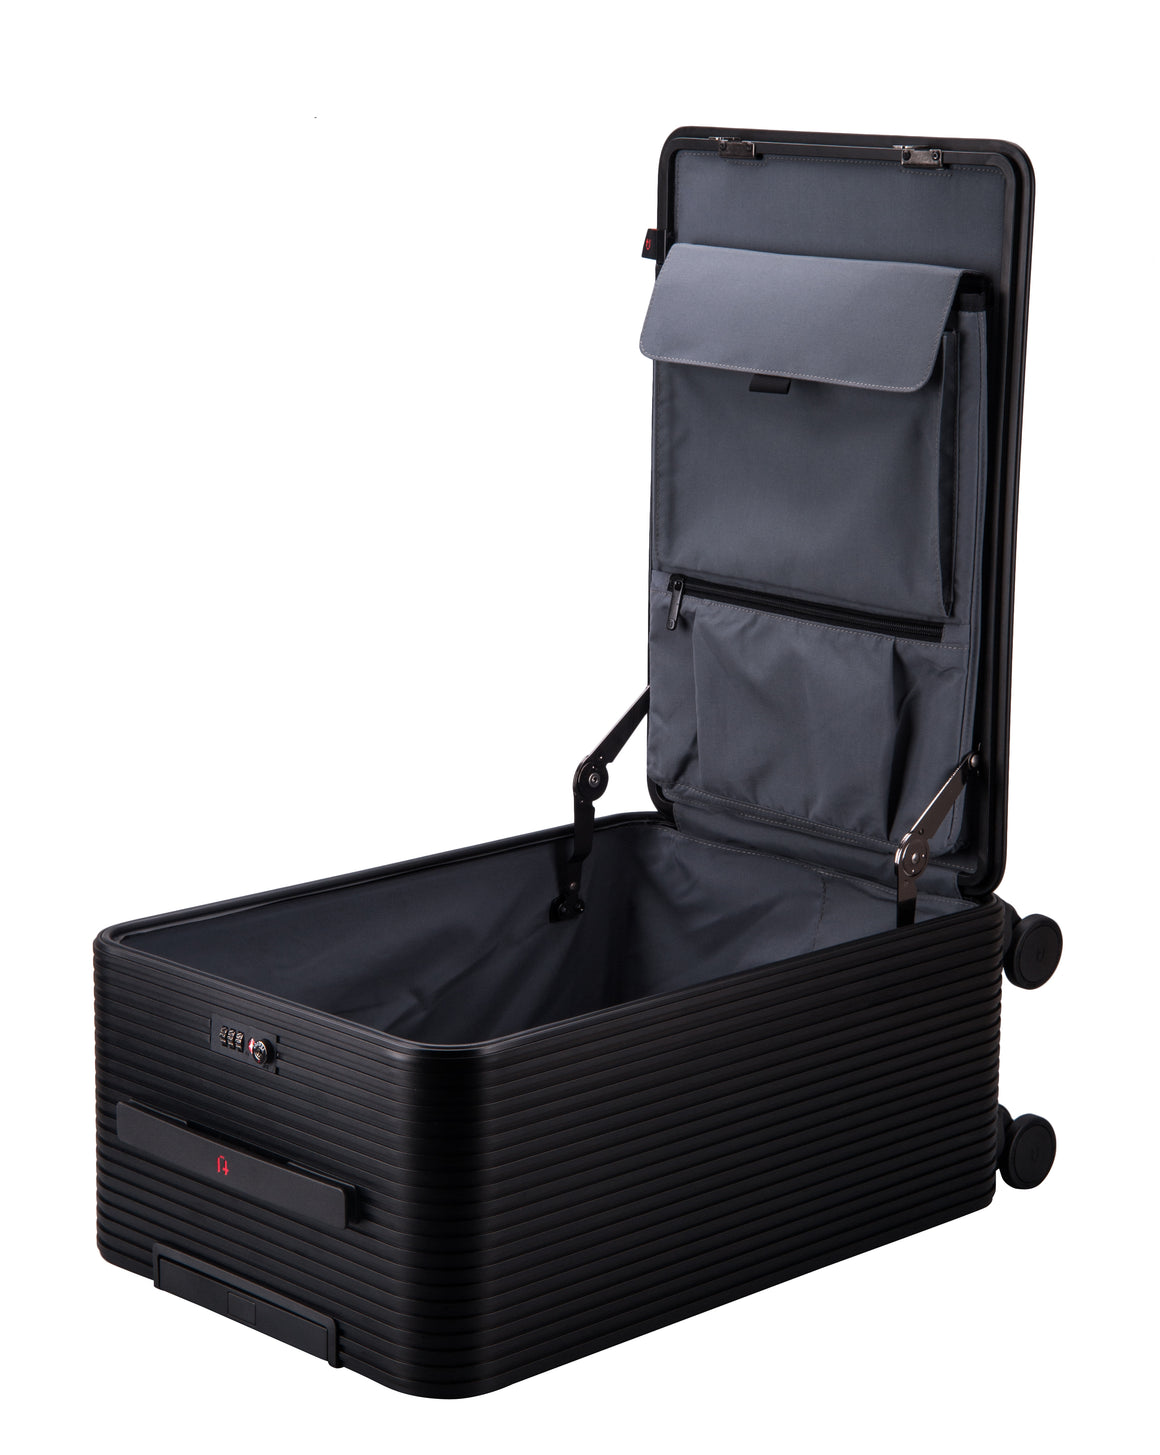 Tuplus One Series 20'' Luggage product image Black/Grey